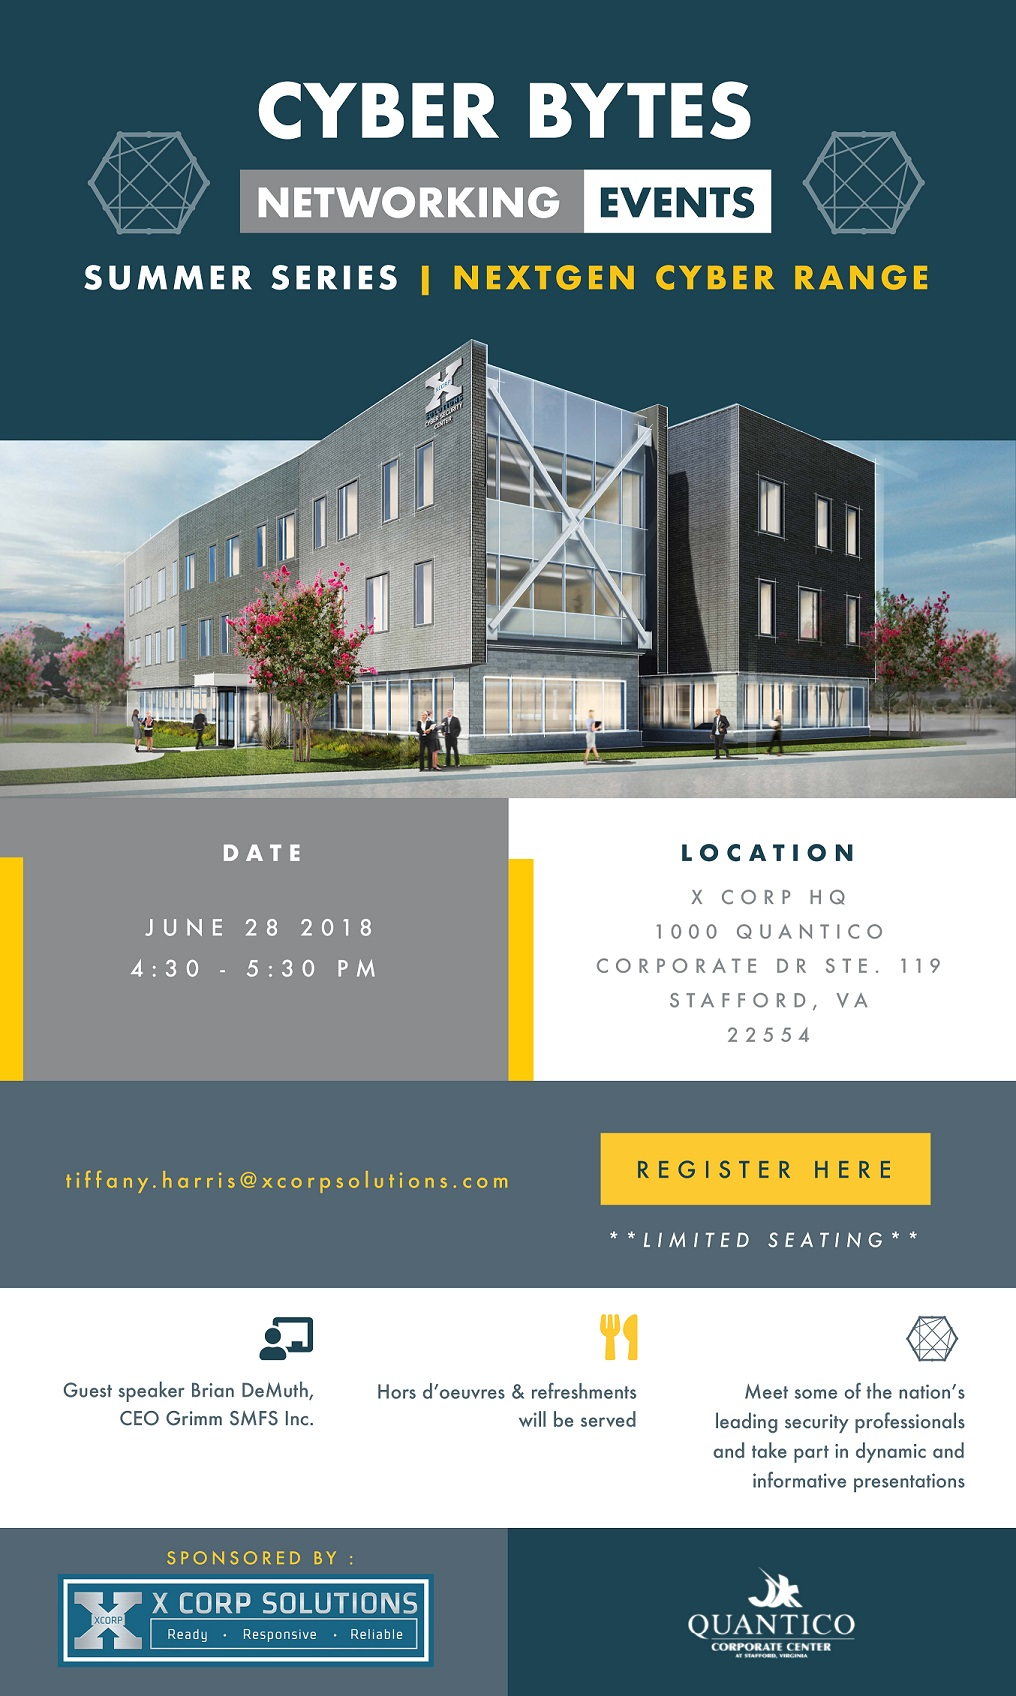 You're Invited! X Corp Solutions' Cybersecurity Networking Event at the Quantico Corporate Center